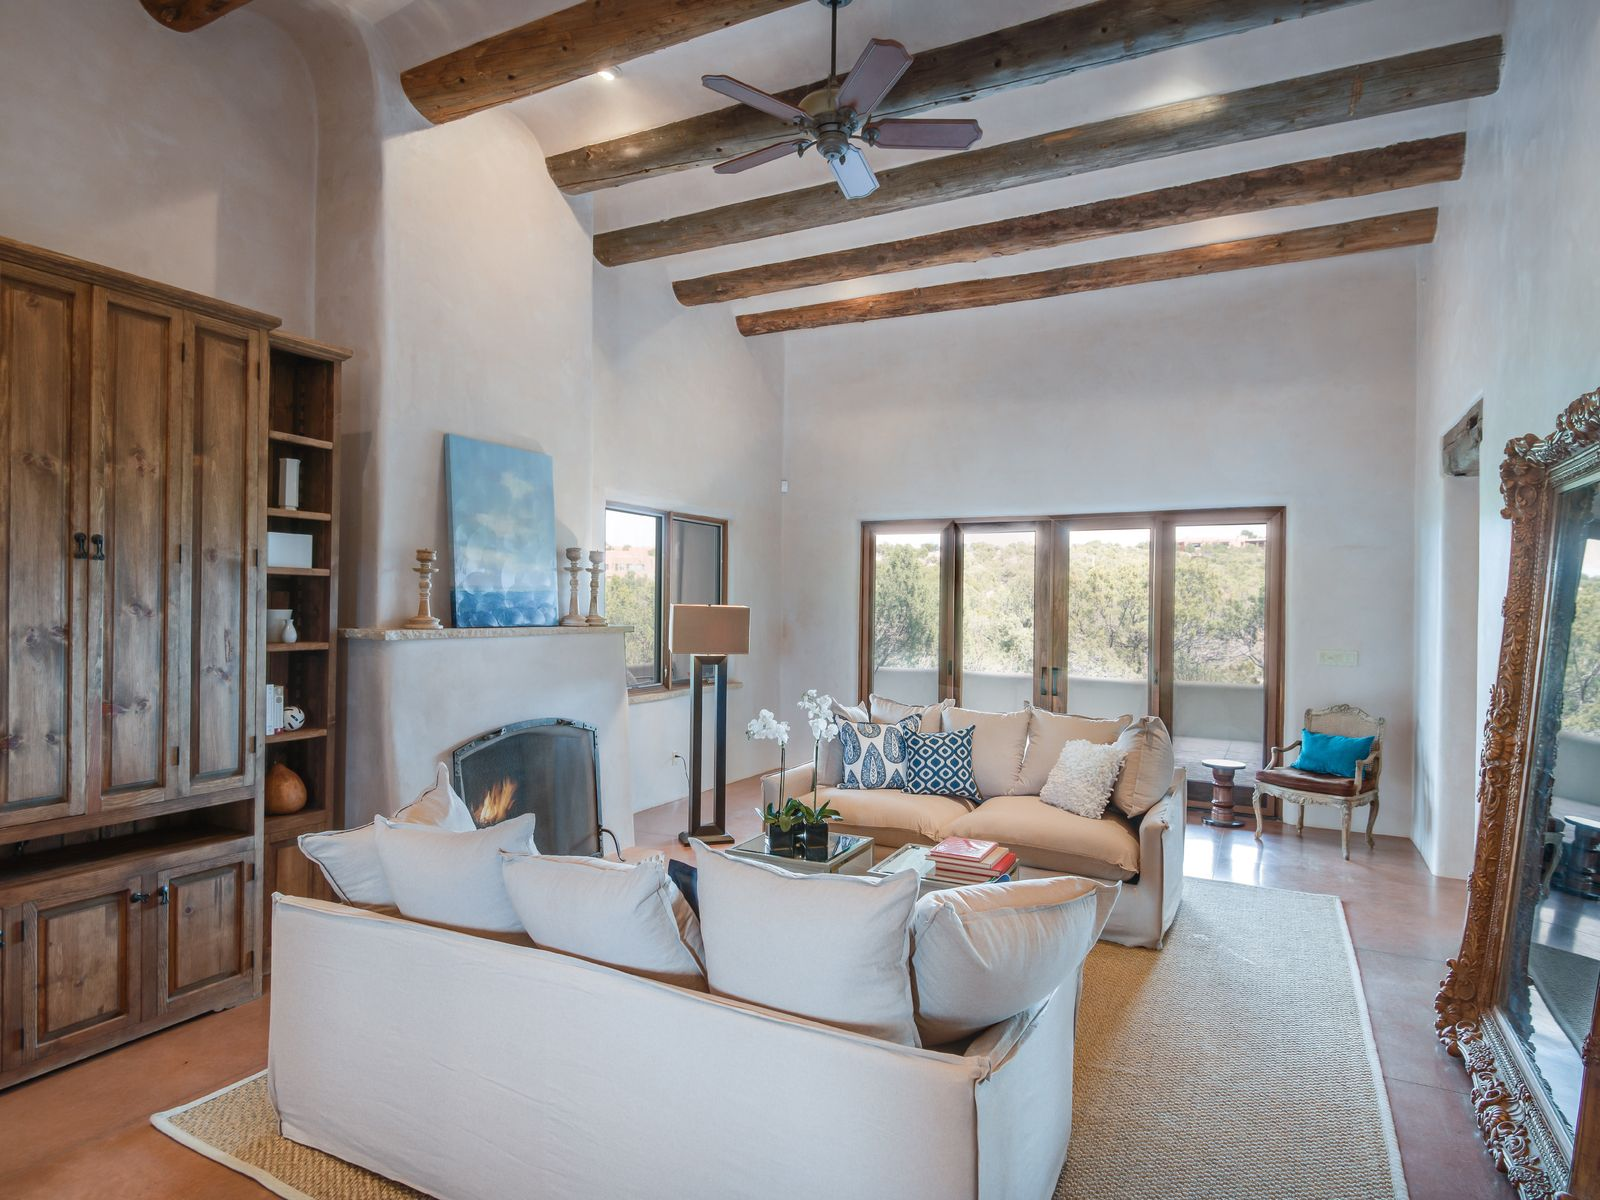 3 Calle San Acacia, Santa Fe NM Single Family Home - Santa Fe Real Estate